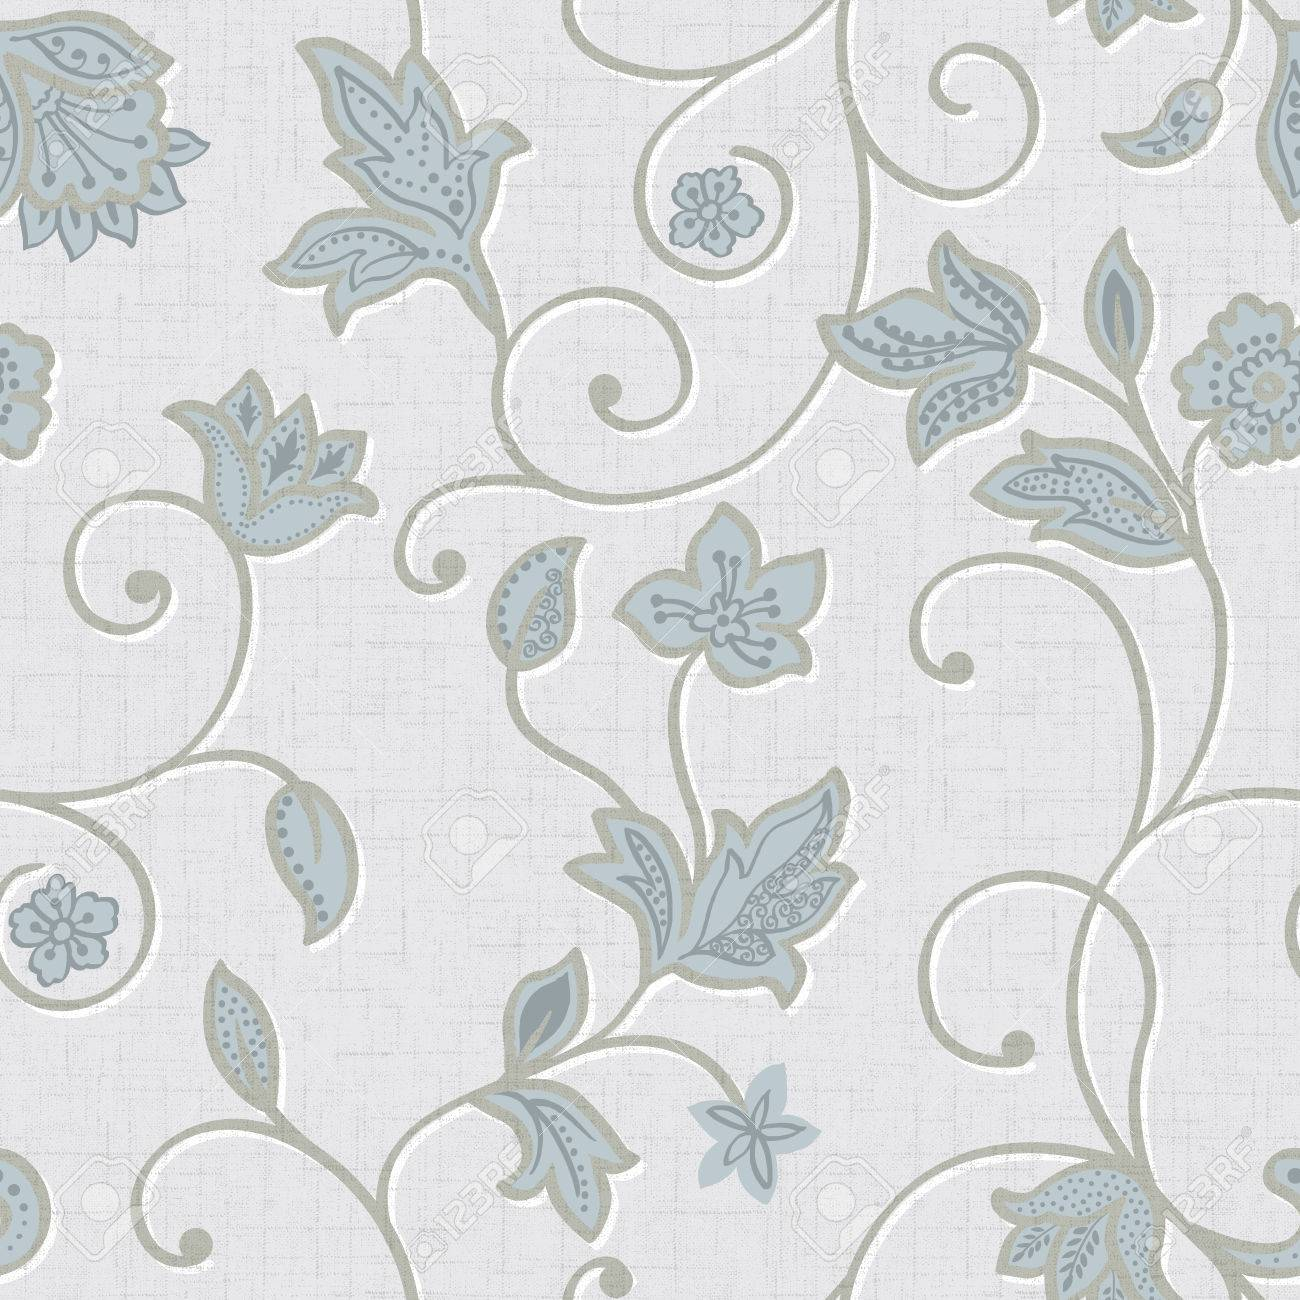 Classical style pattern seamless background - For easy making seamless pattern use it for filling any contours Stock Photo - 23095740